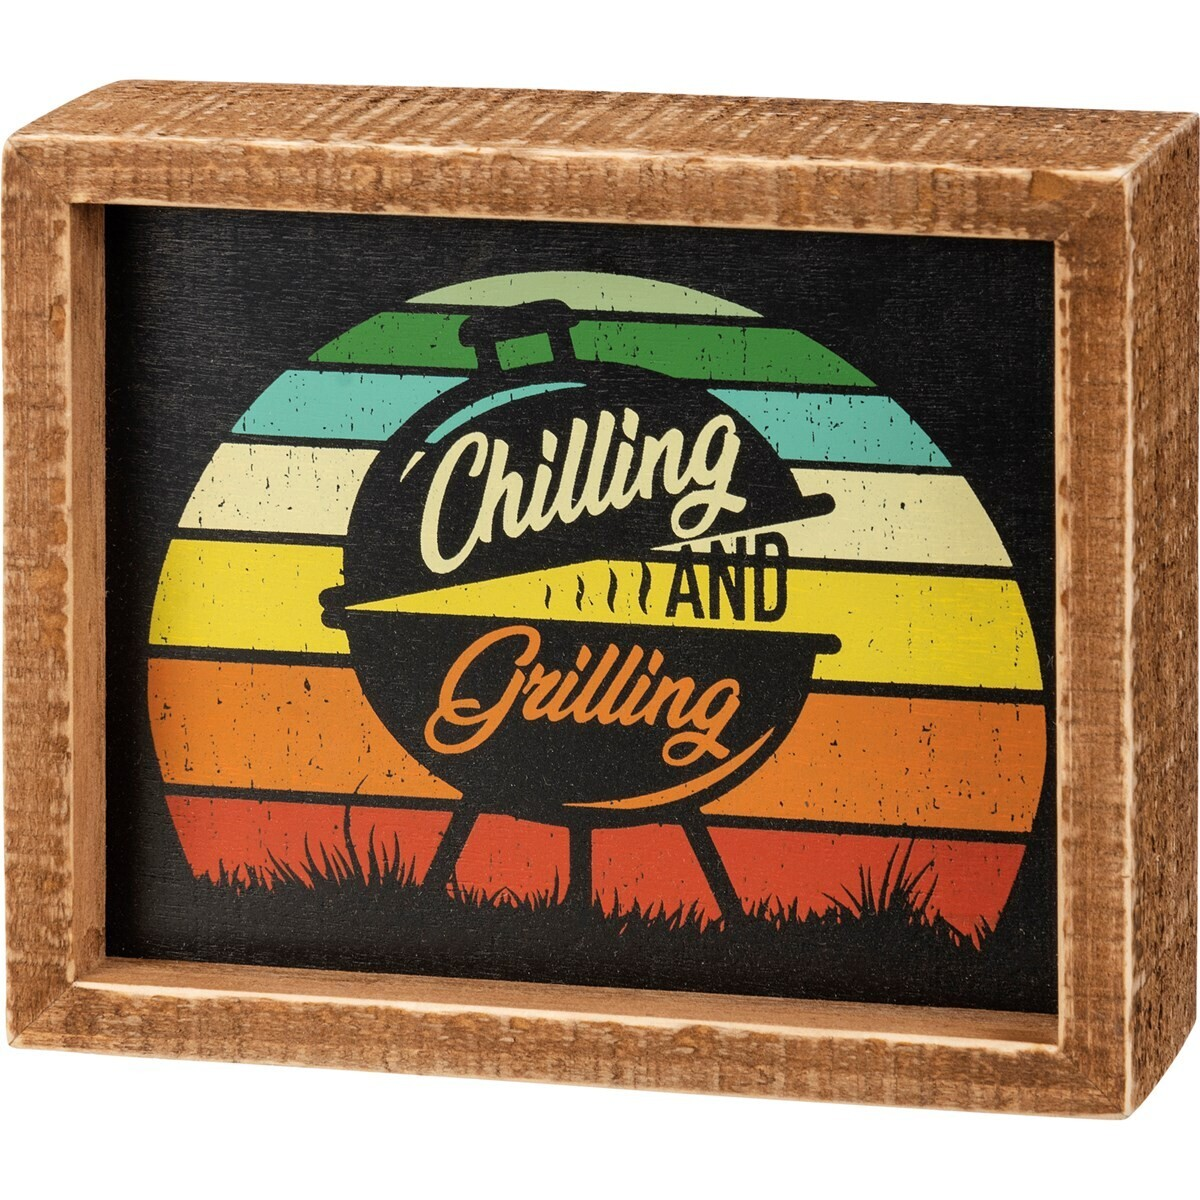 inset box sign; chilling and grilling